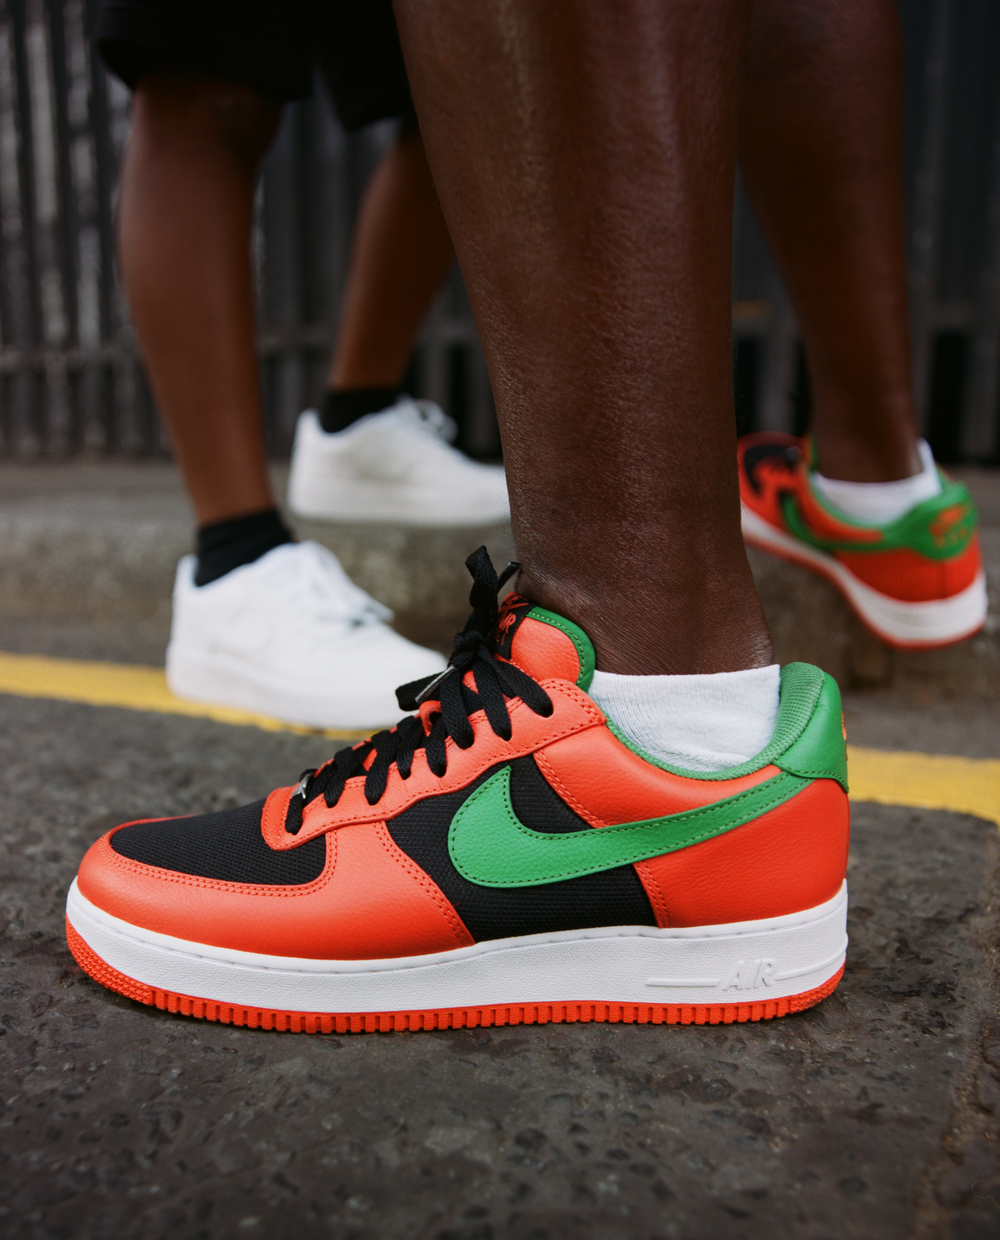 Nike Announce Air Force 1 'Carnival' Re-Release